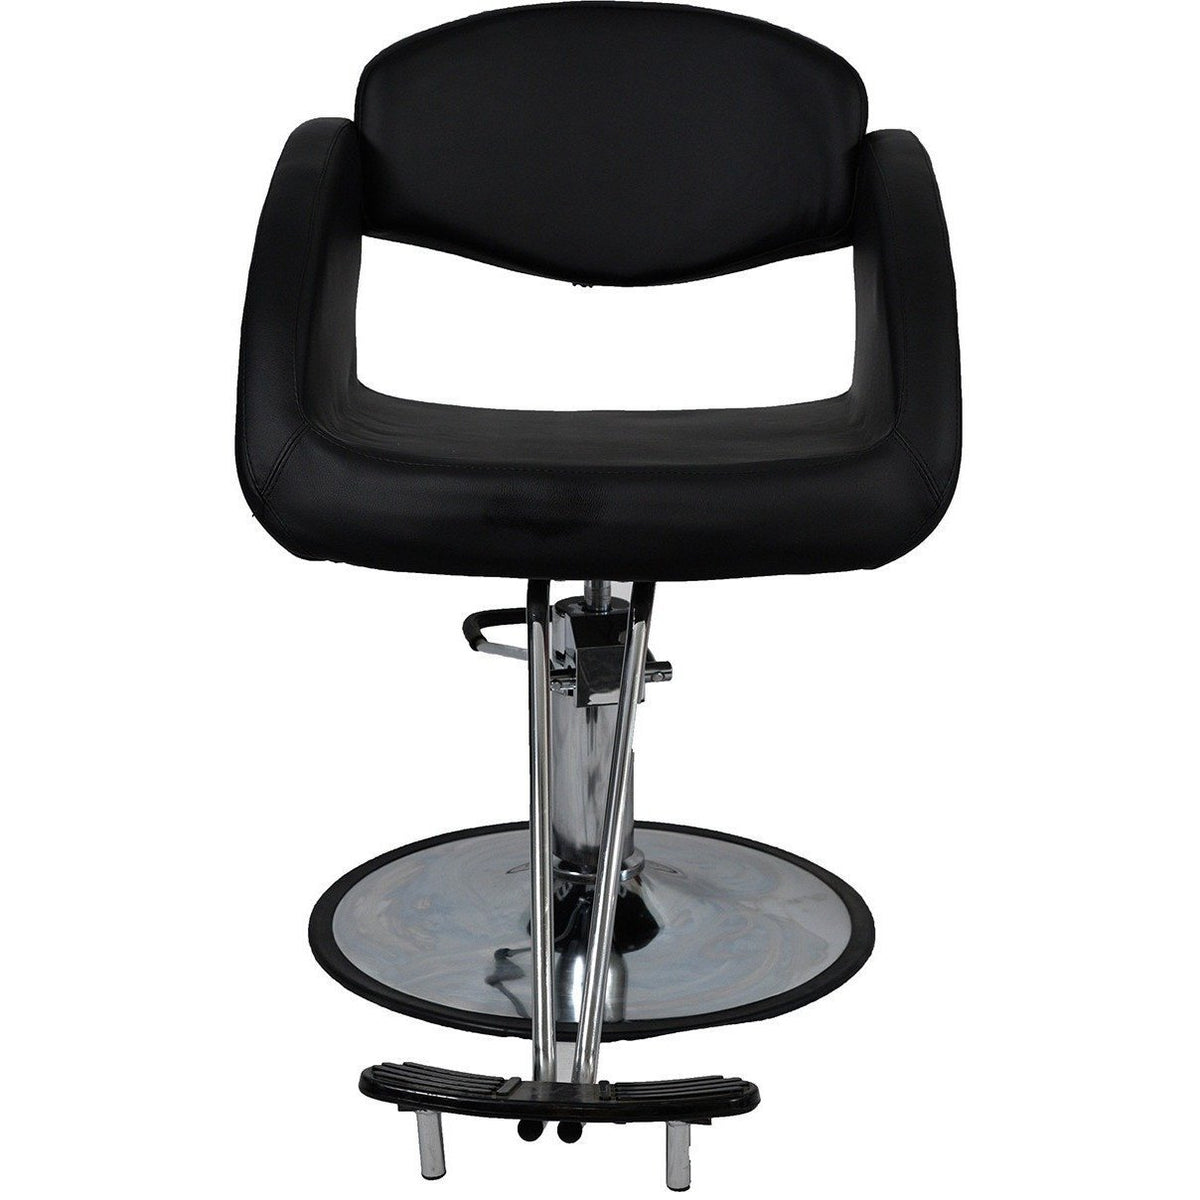 Essential Spa Equipment -  Styling Chair #2